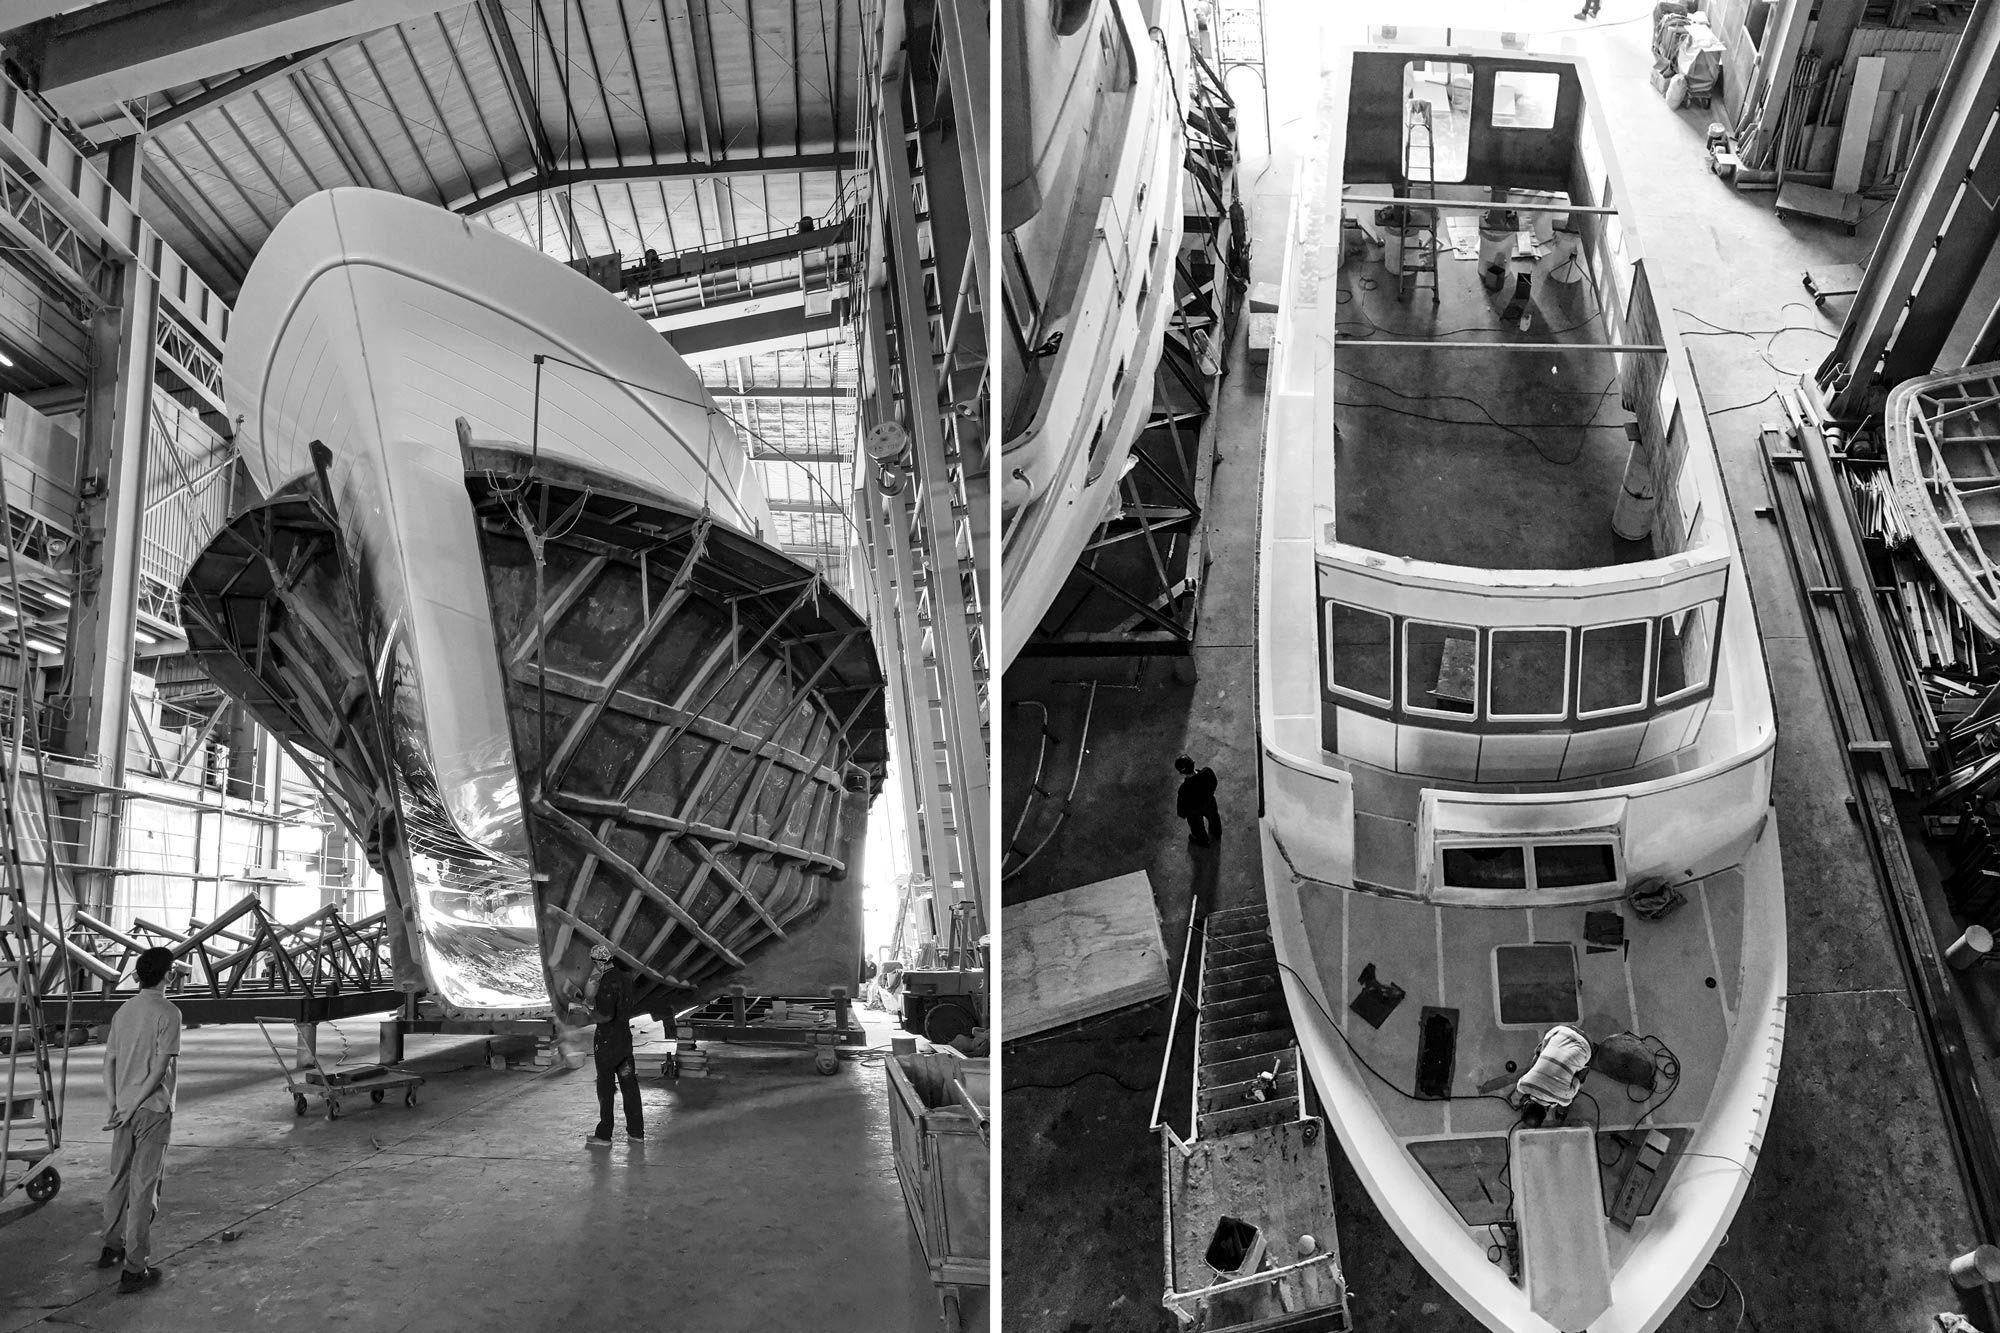 On the left, an Outer Reef 860 Deluxbridge comes out of the mold at the shipyard. Customization is part of the build process at the Outer Reef yard and can be done anywhere on board. In some cases, the builder has moved bulkheads and adapted layouts to satisfy client requests.